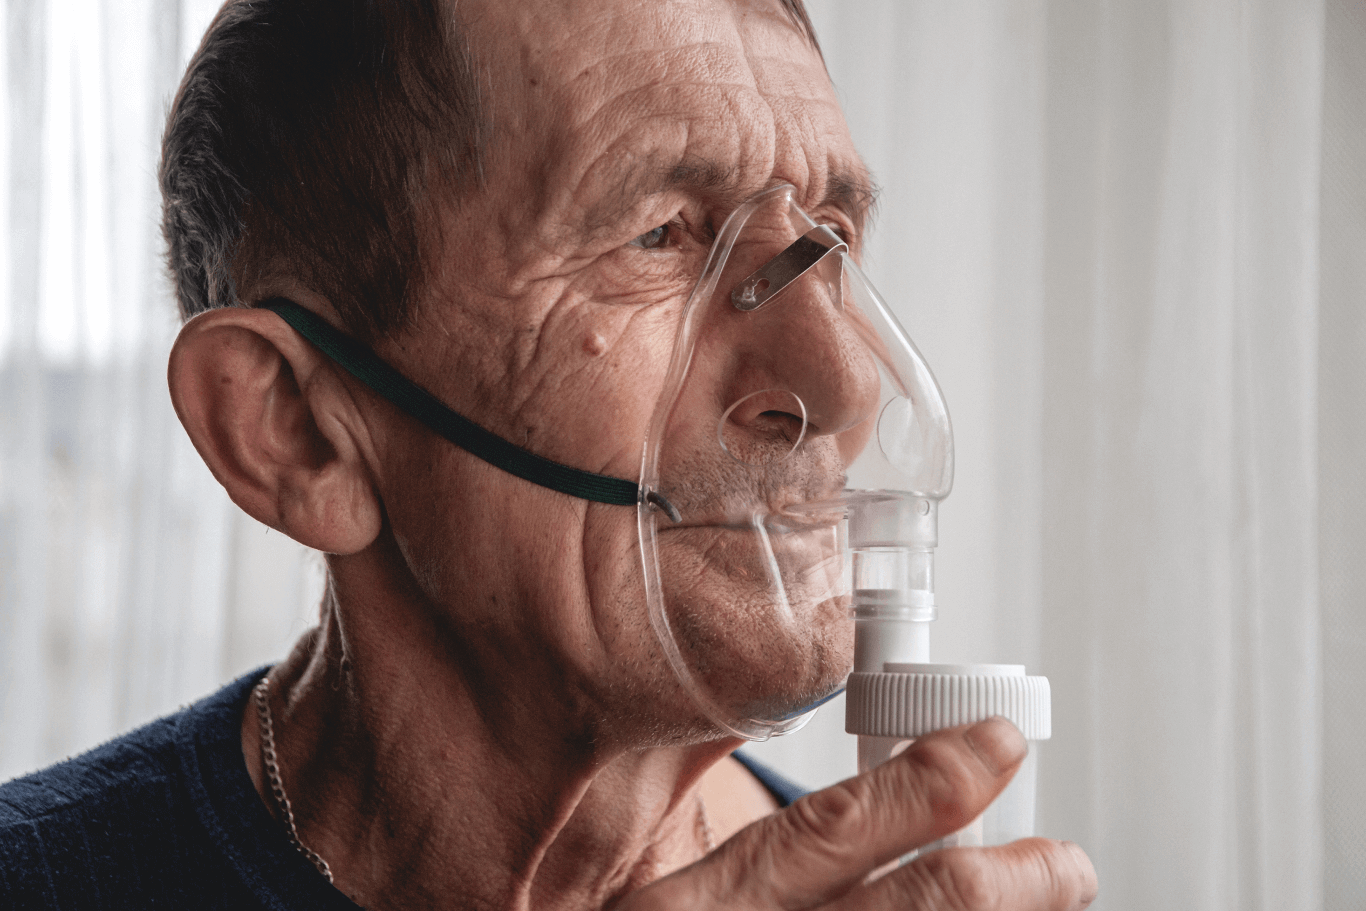 Mature patient using an oxygen mask at home